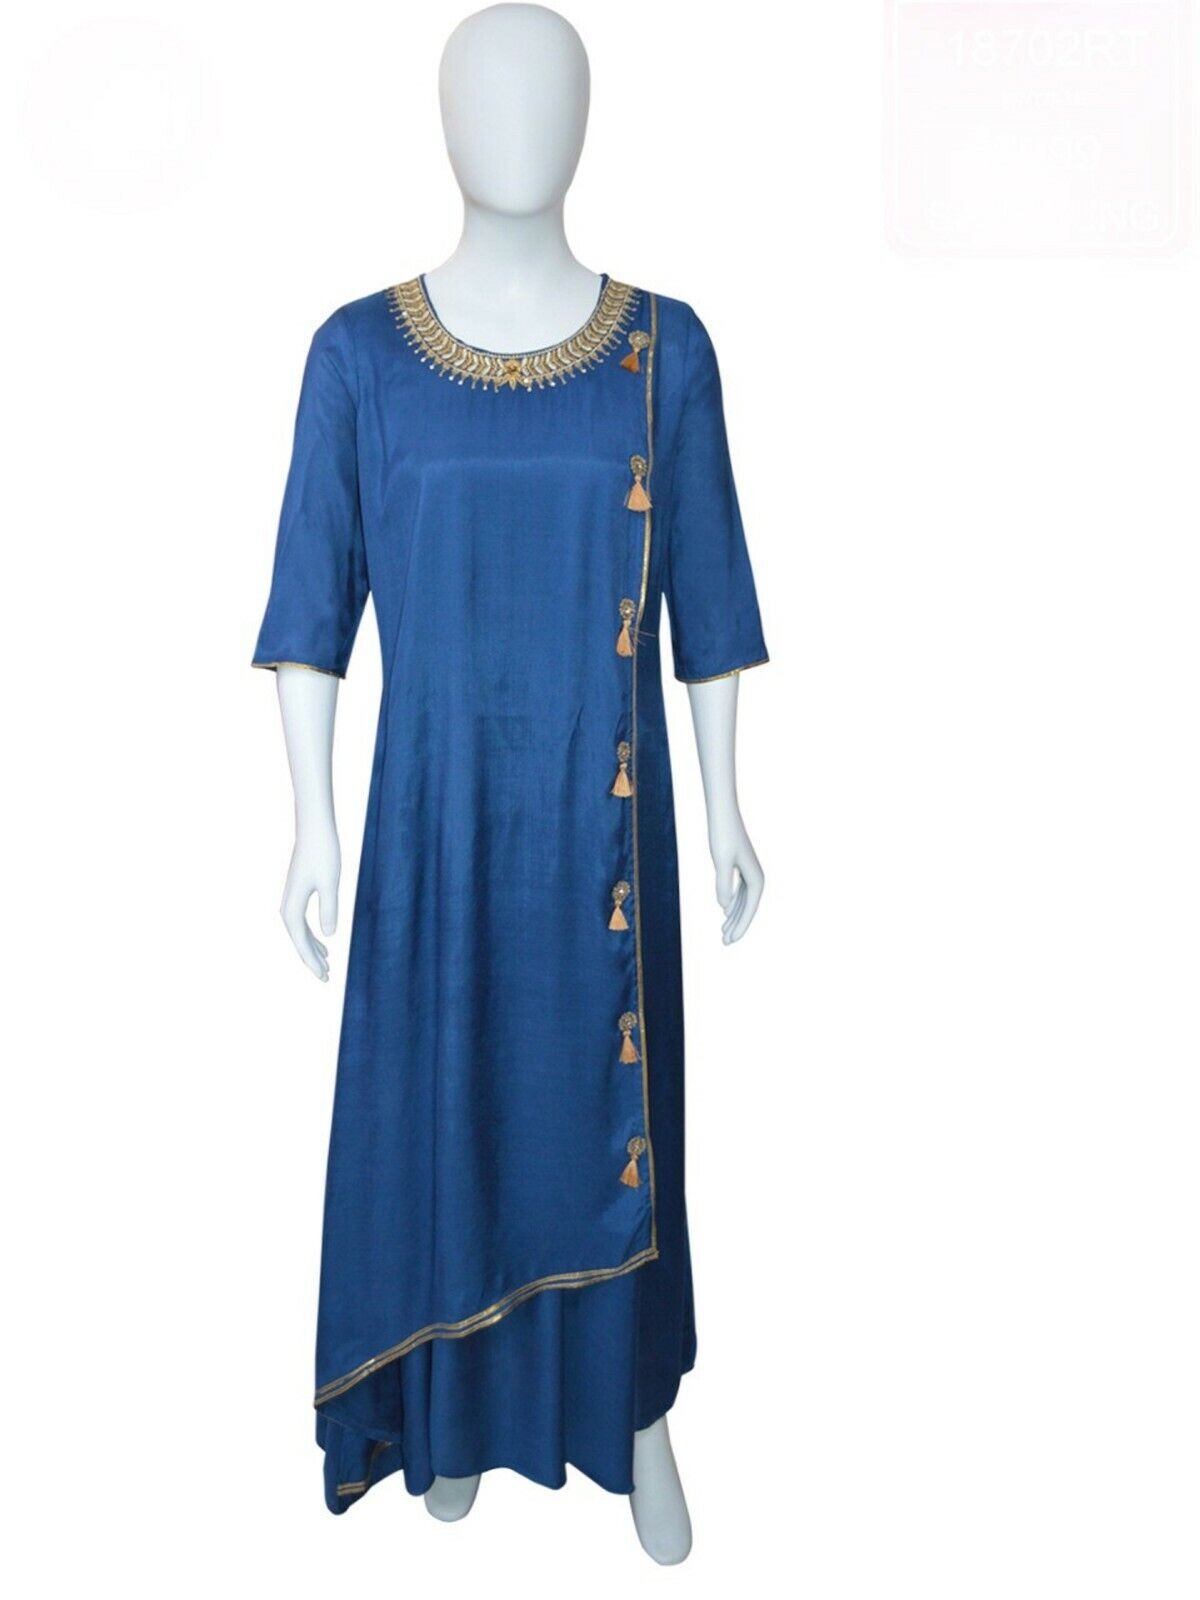 Cotton Silk Ethnic Dress with Golden Neck Embroidery   Golden Tassels   Brahhma